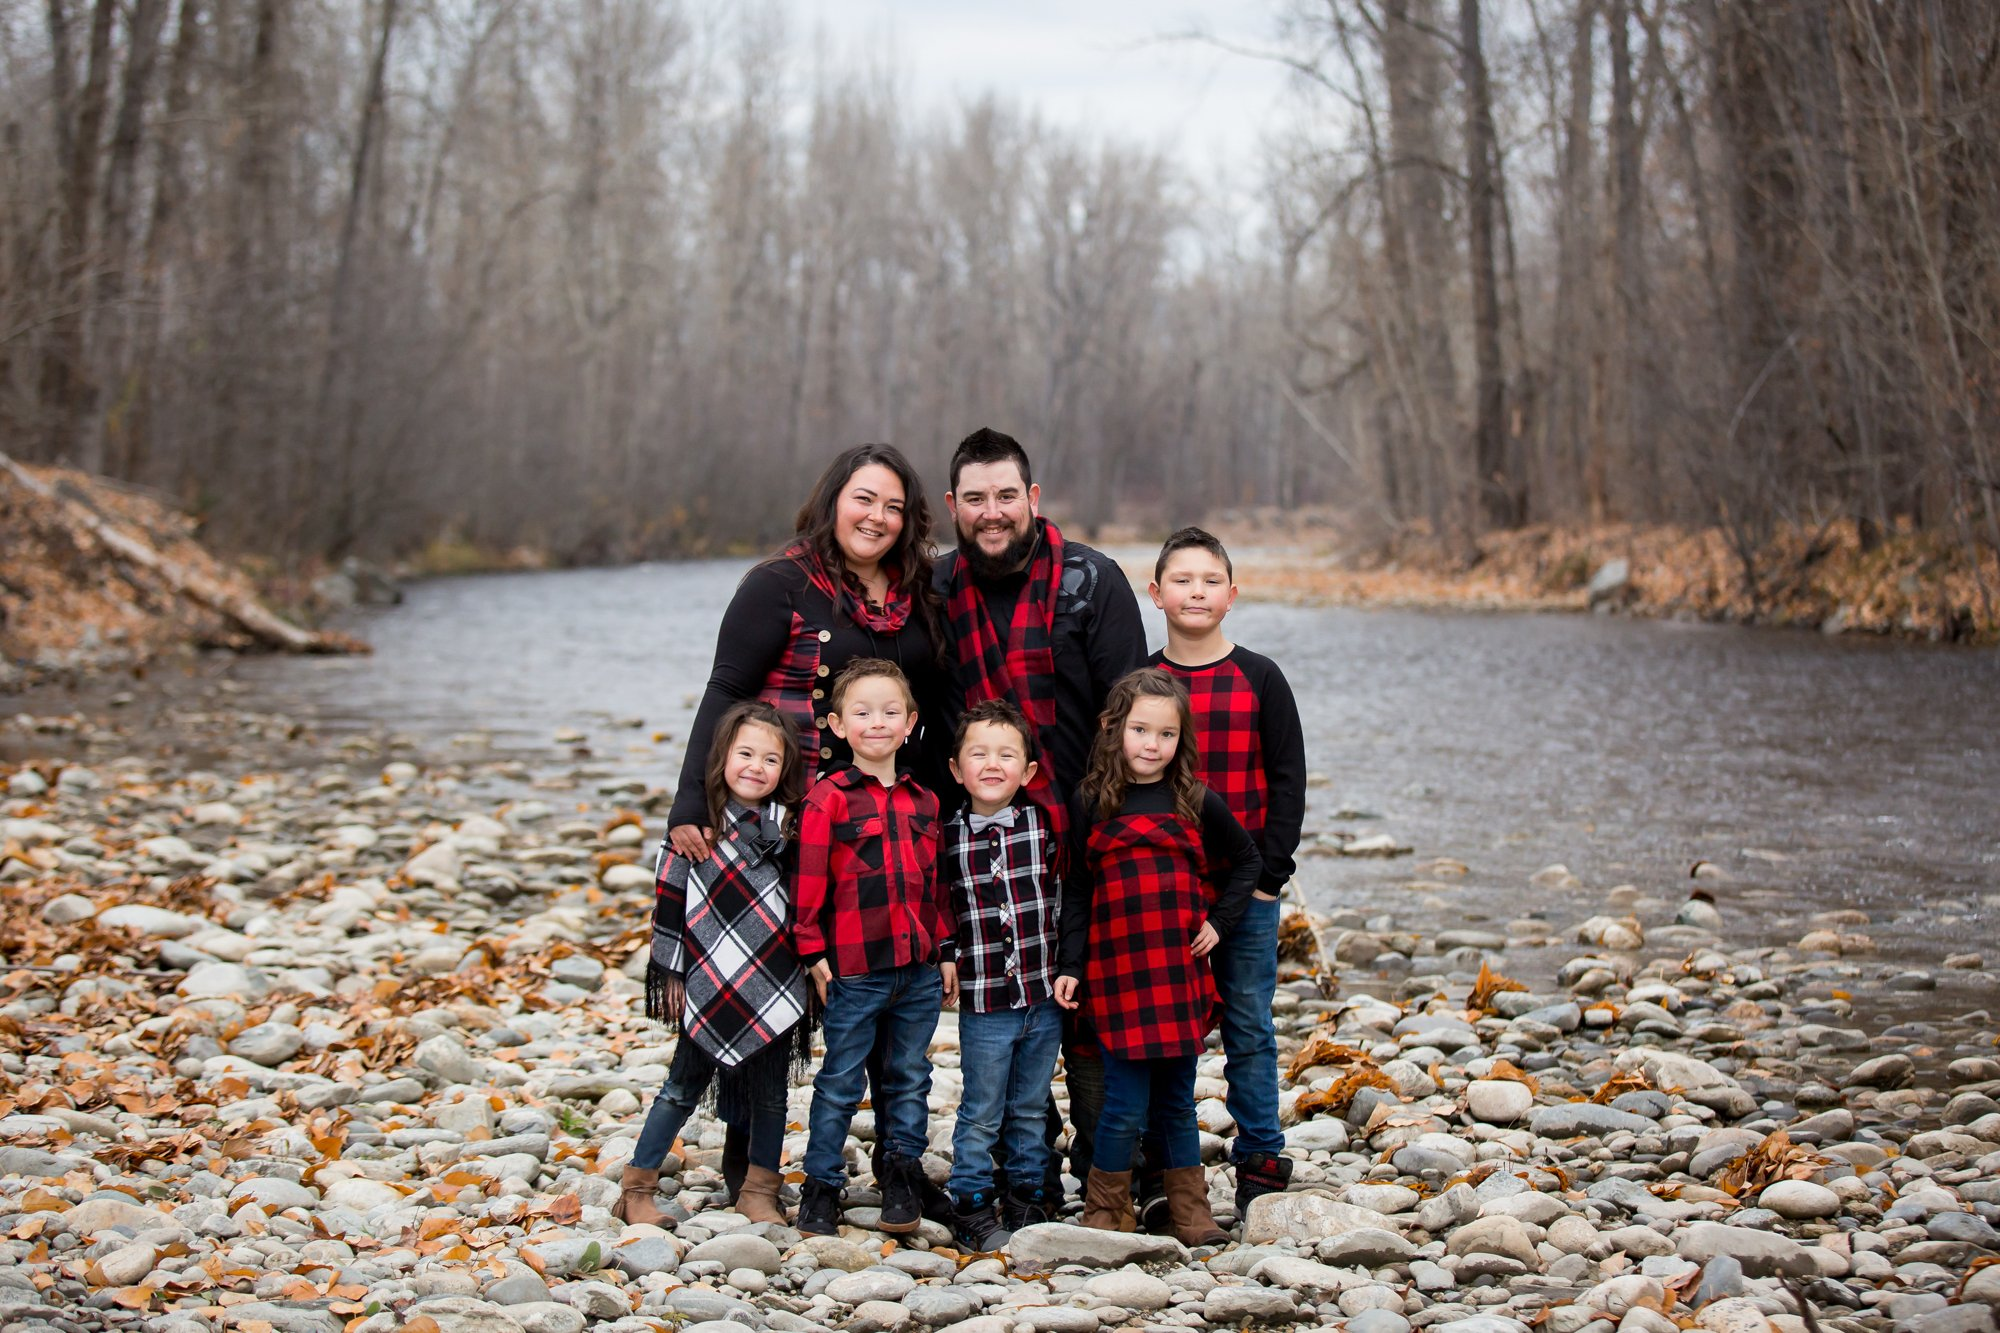 A family standing together in a creekside wearing red plaid